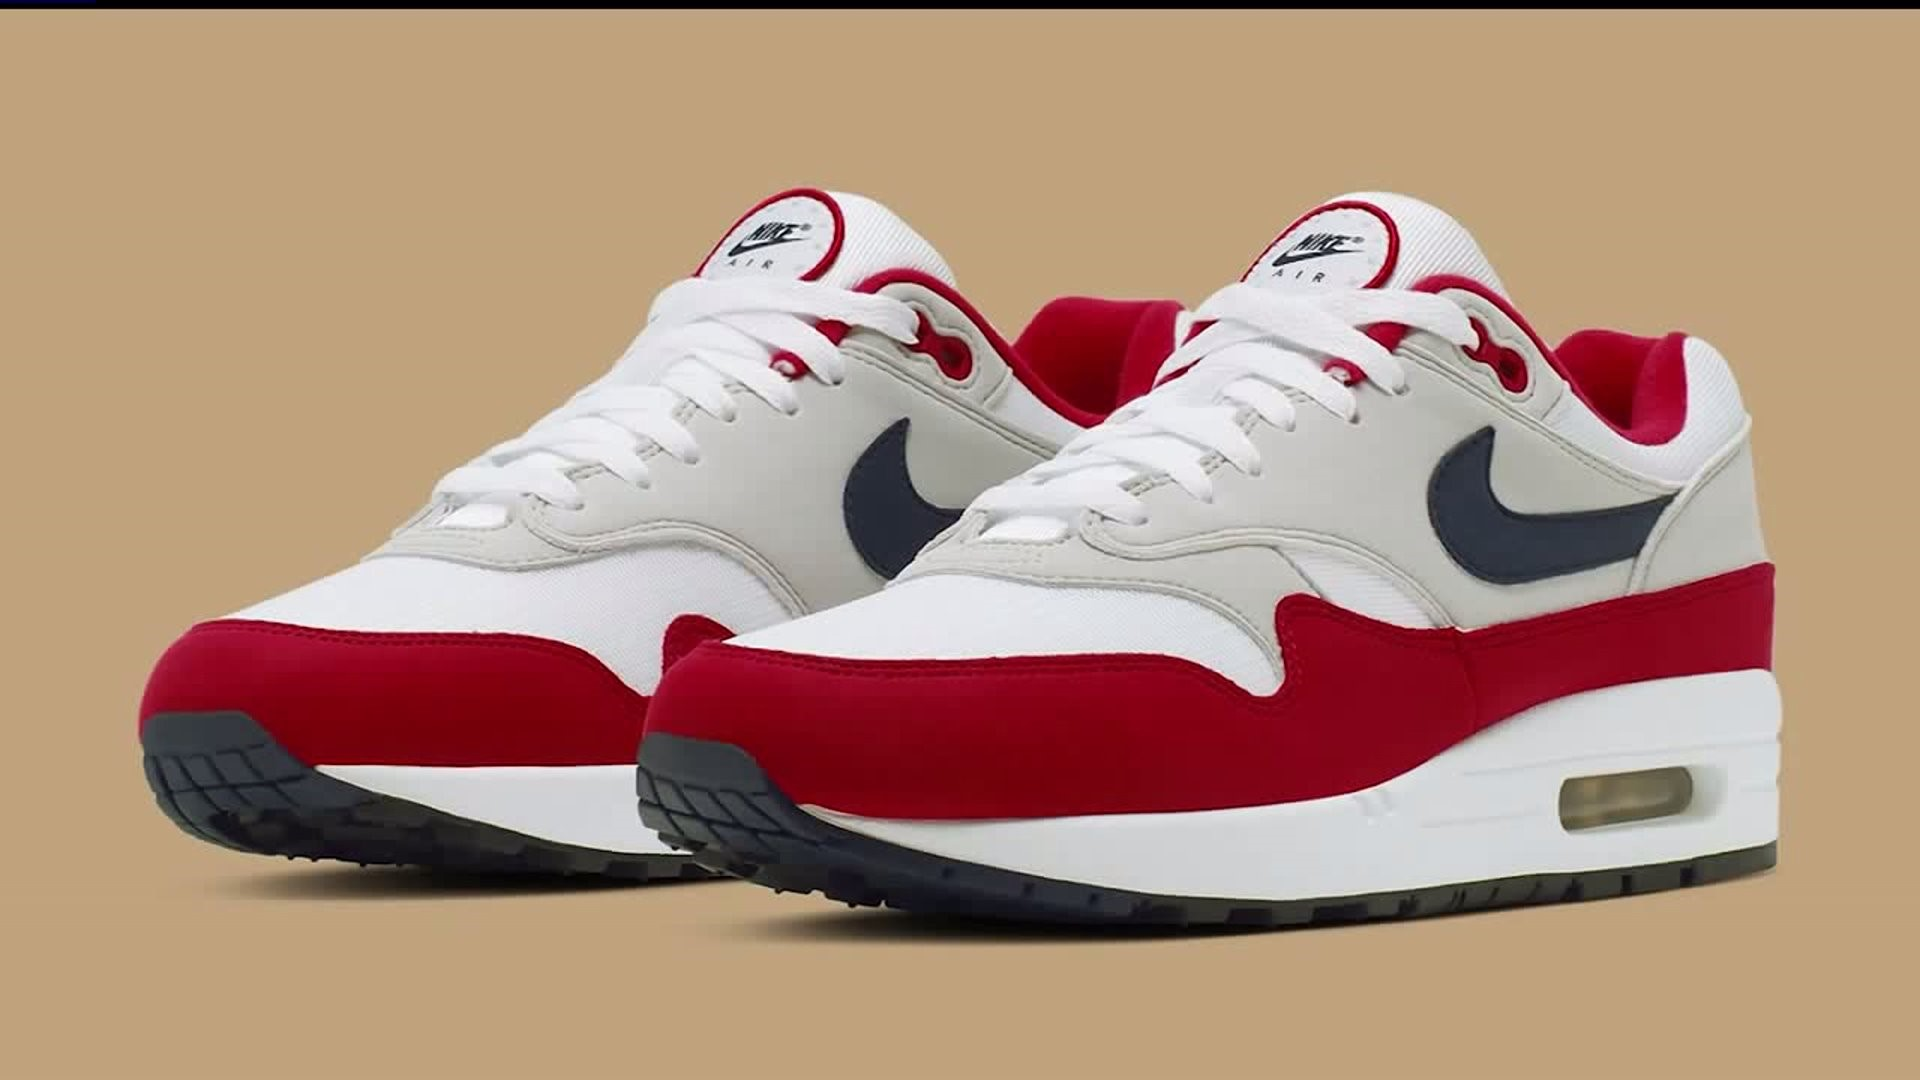 Nike pulled this 'Betsy Ross' flag shoe